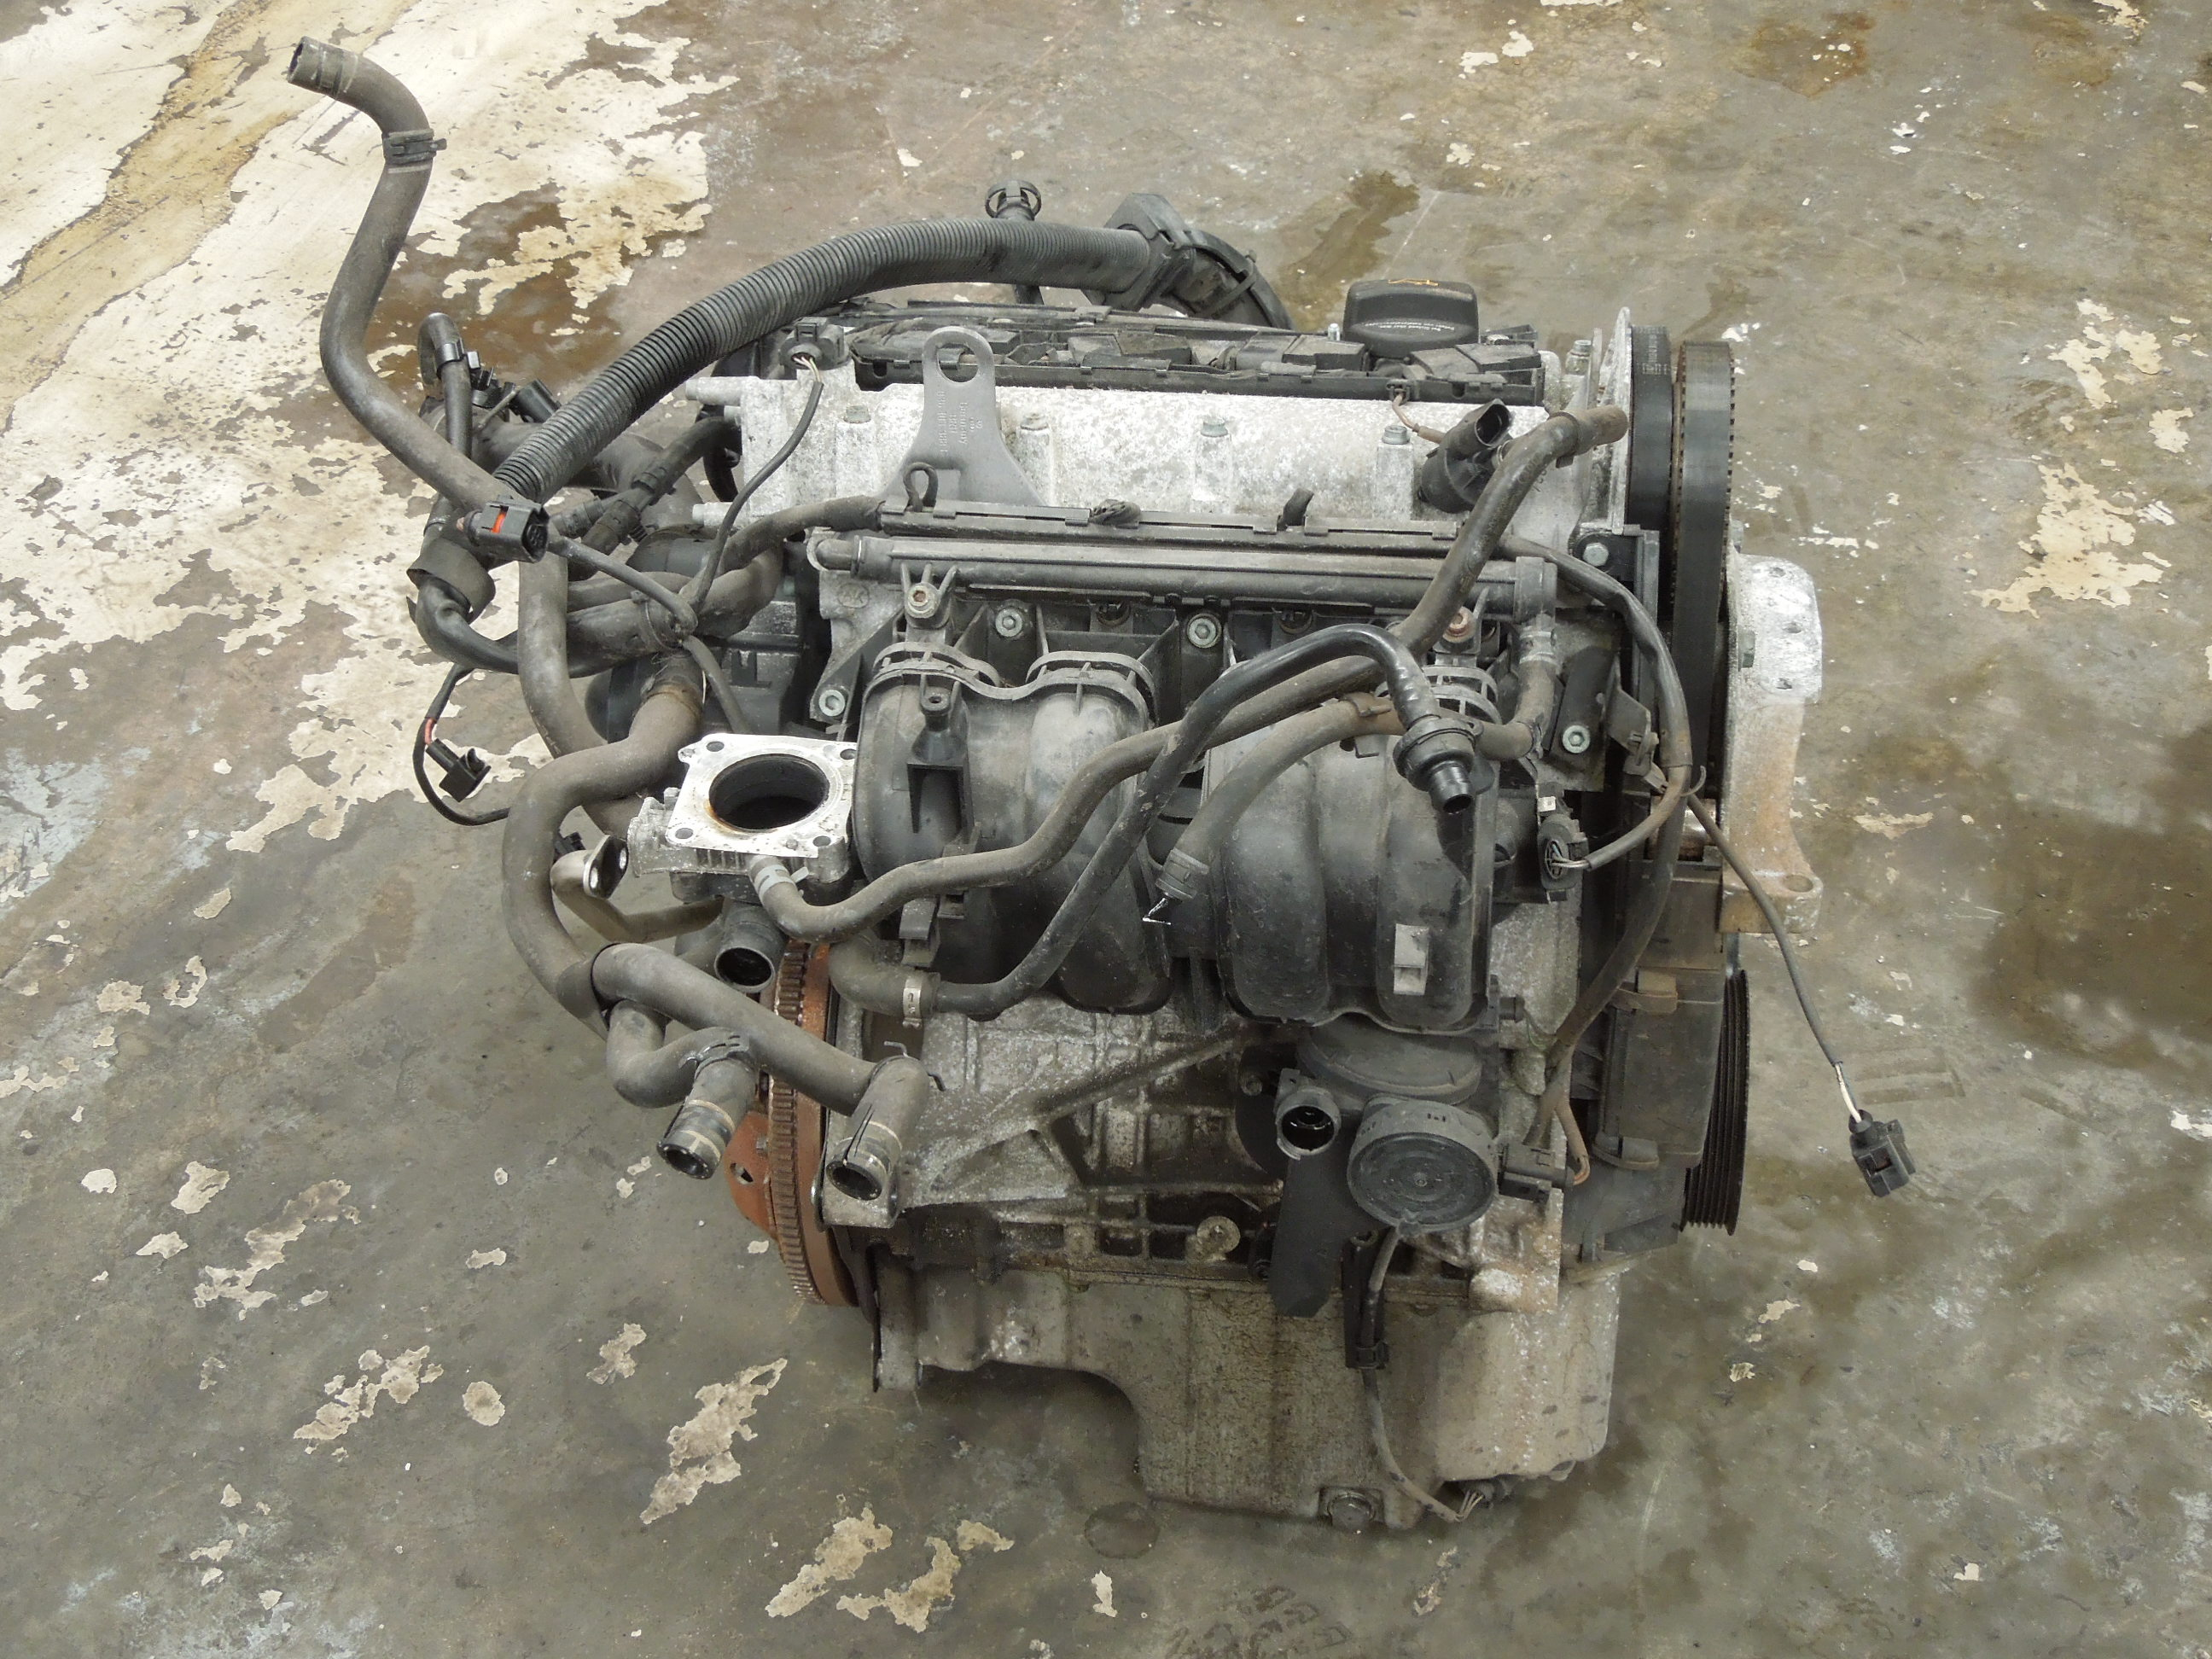 diesel image unleashed audi tdi suv business monster has a insider new engines